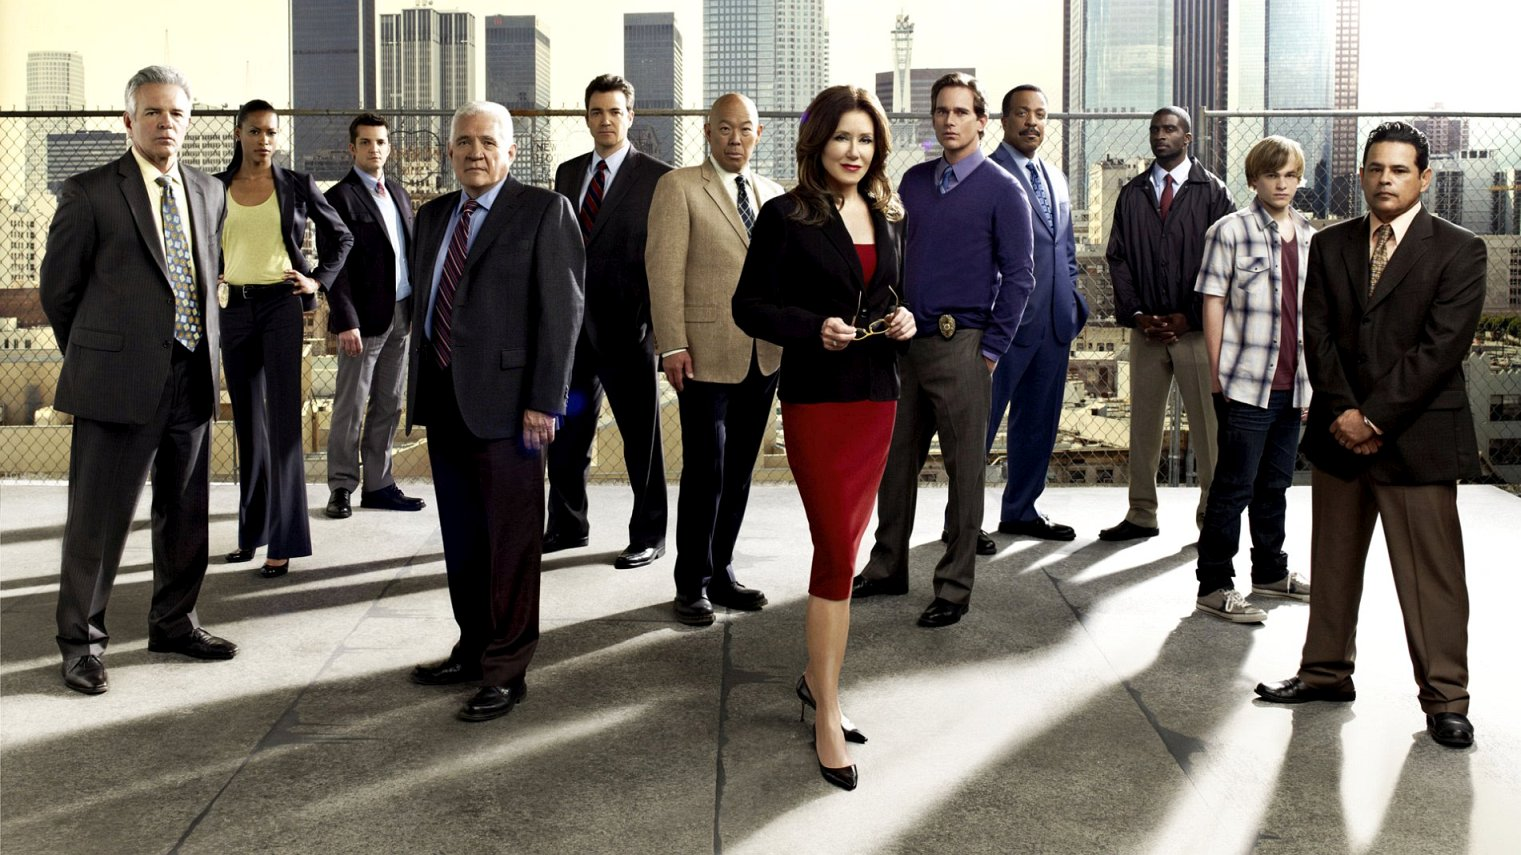 Major Crimes season 6 episode 4 watch online